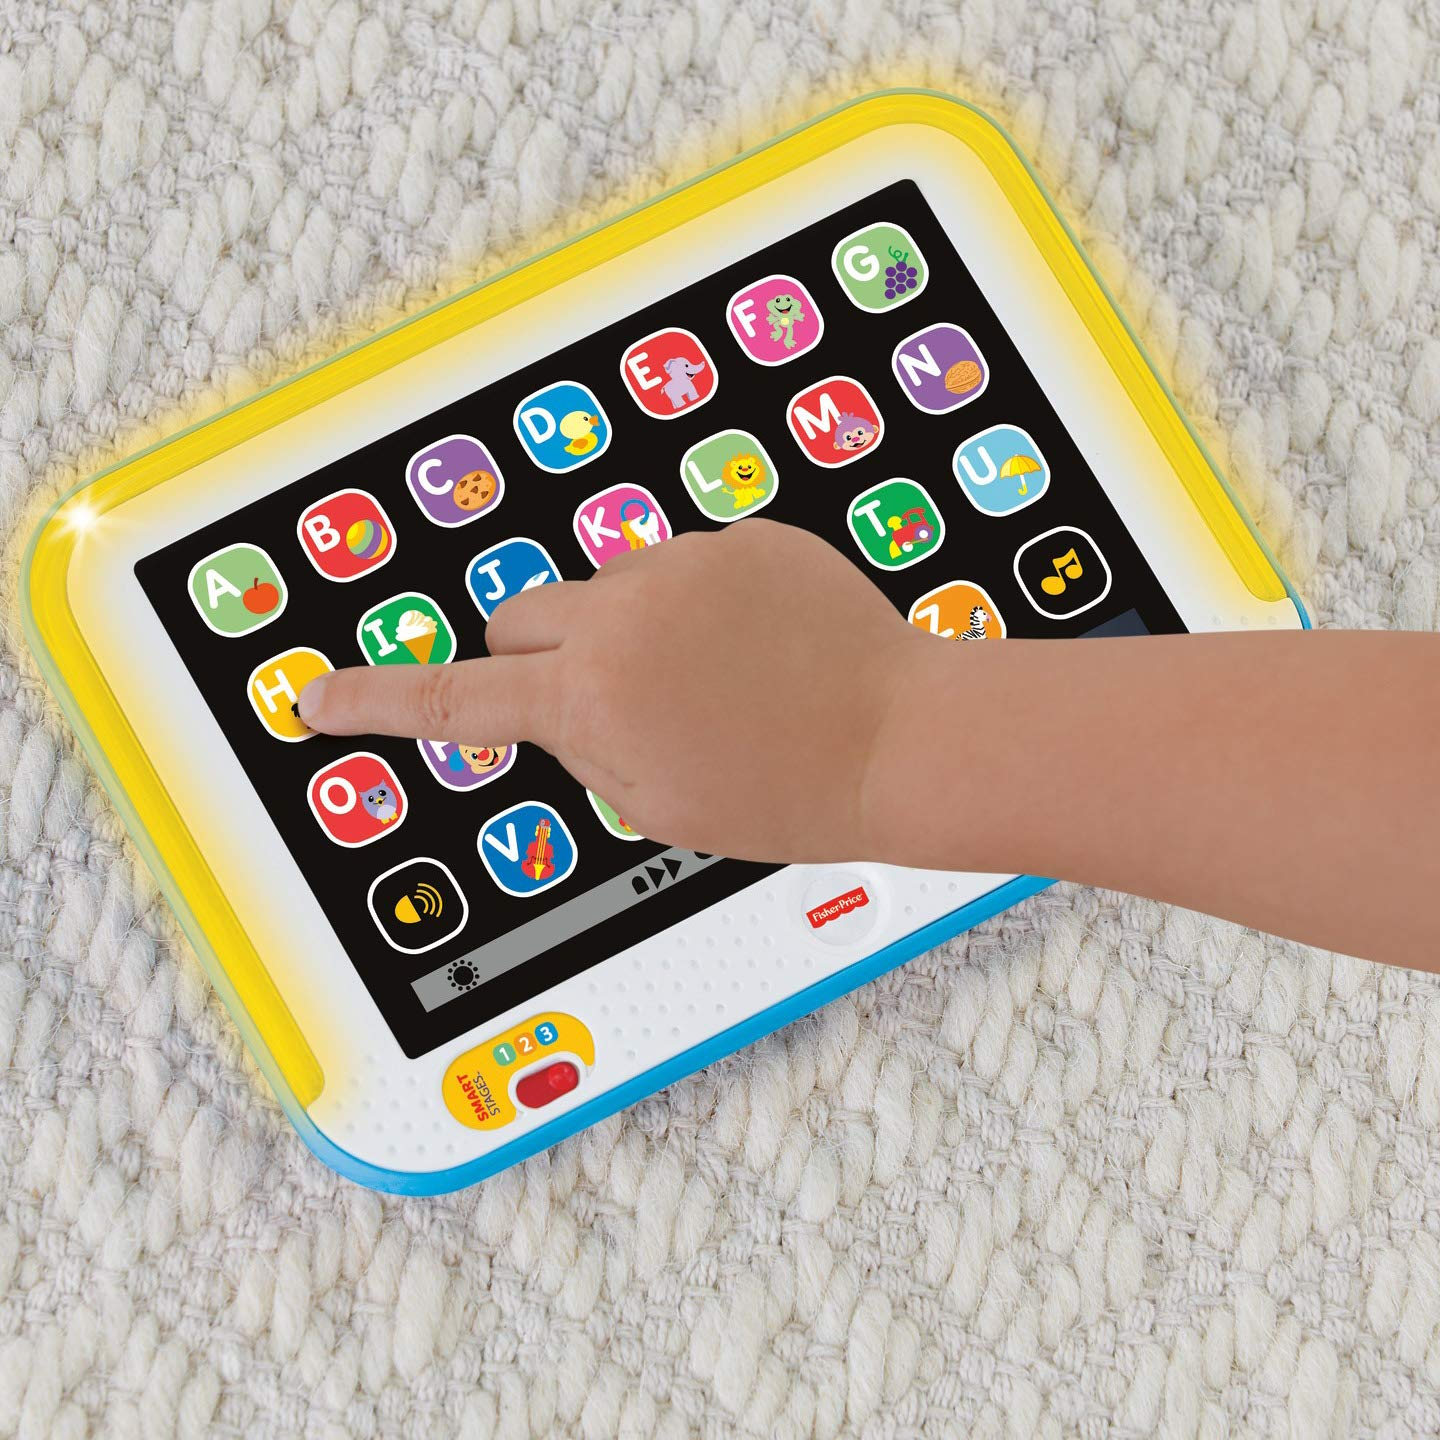 Fisher-Price Laugh & Learn Smart Stages Tablet, Blue by Fisher-Price (Image #10)